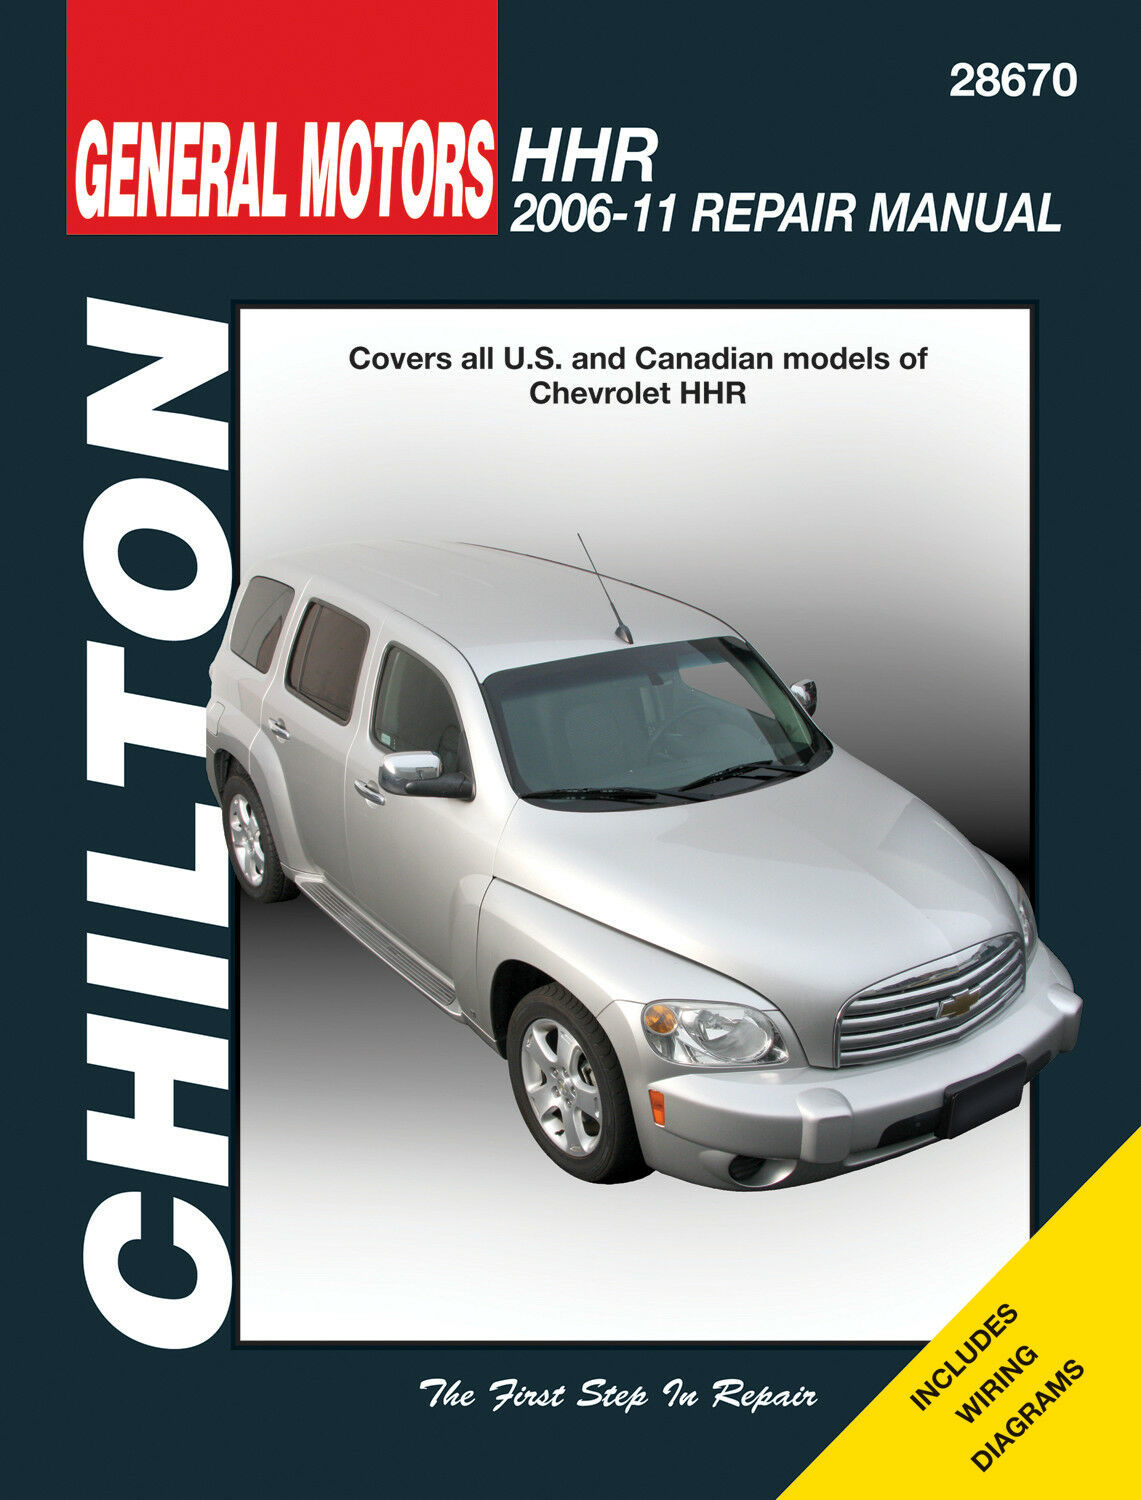 Repair Manual Chilton 28670 Fits 06 11 Chevrolet Hhr Ebay Chevy Tail Light Wiring Diagram Stock Photo